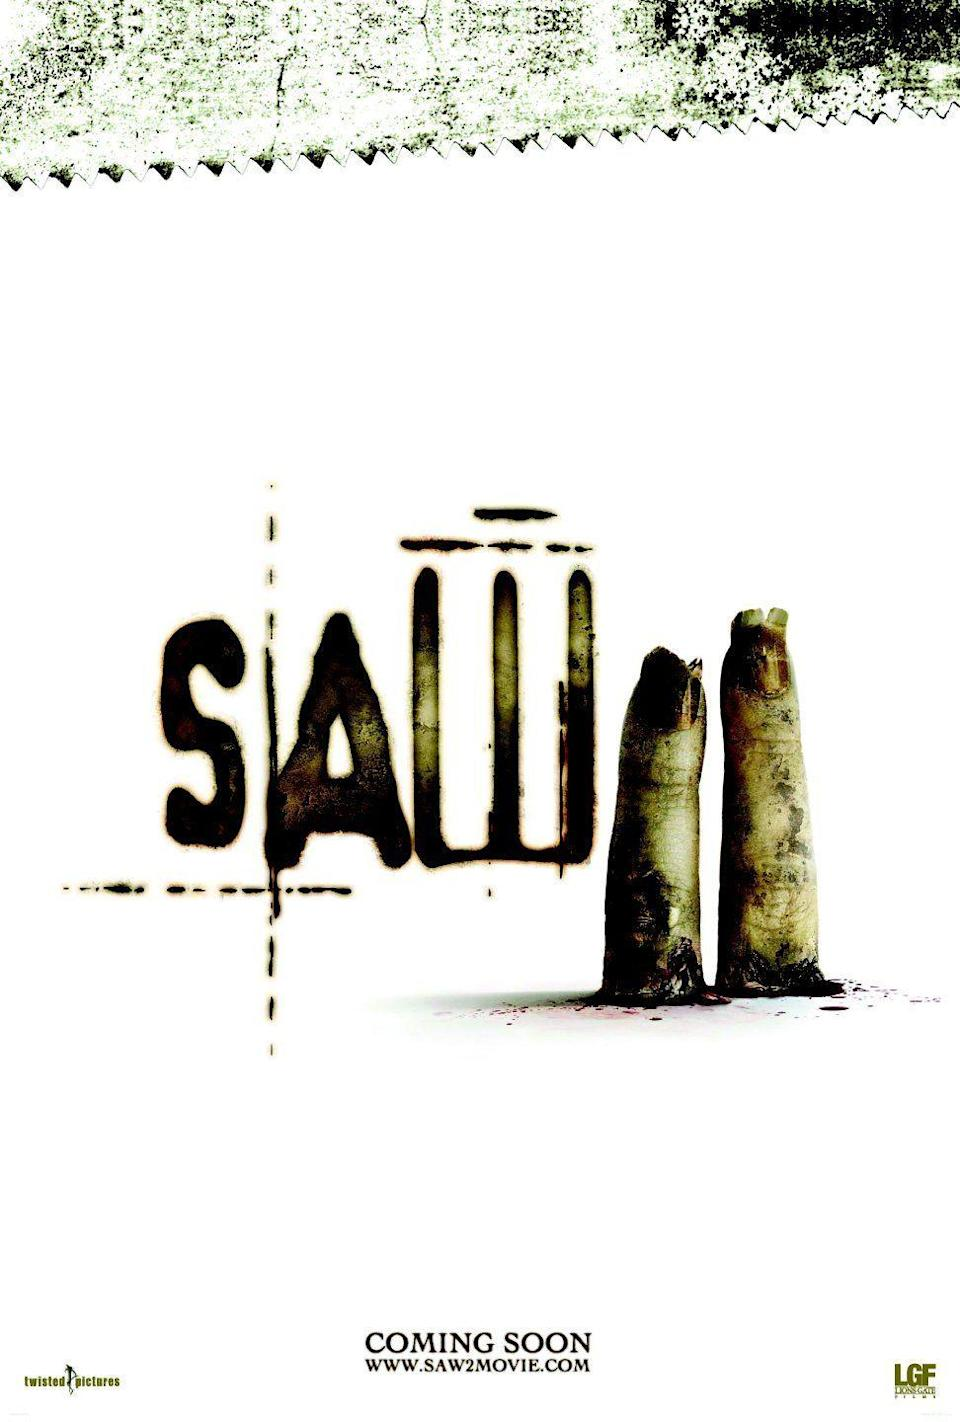 <p><b>Why it was banned: </b>The 'Saw' franchise got away with far more violent acts in its time than the relatively tame lopping off of a couple of fingers, but the MPAA drew the line at this sparse poster, which it decided was too upsetting to be displayed in US cinemas.</p>